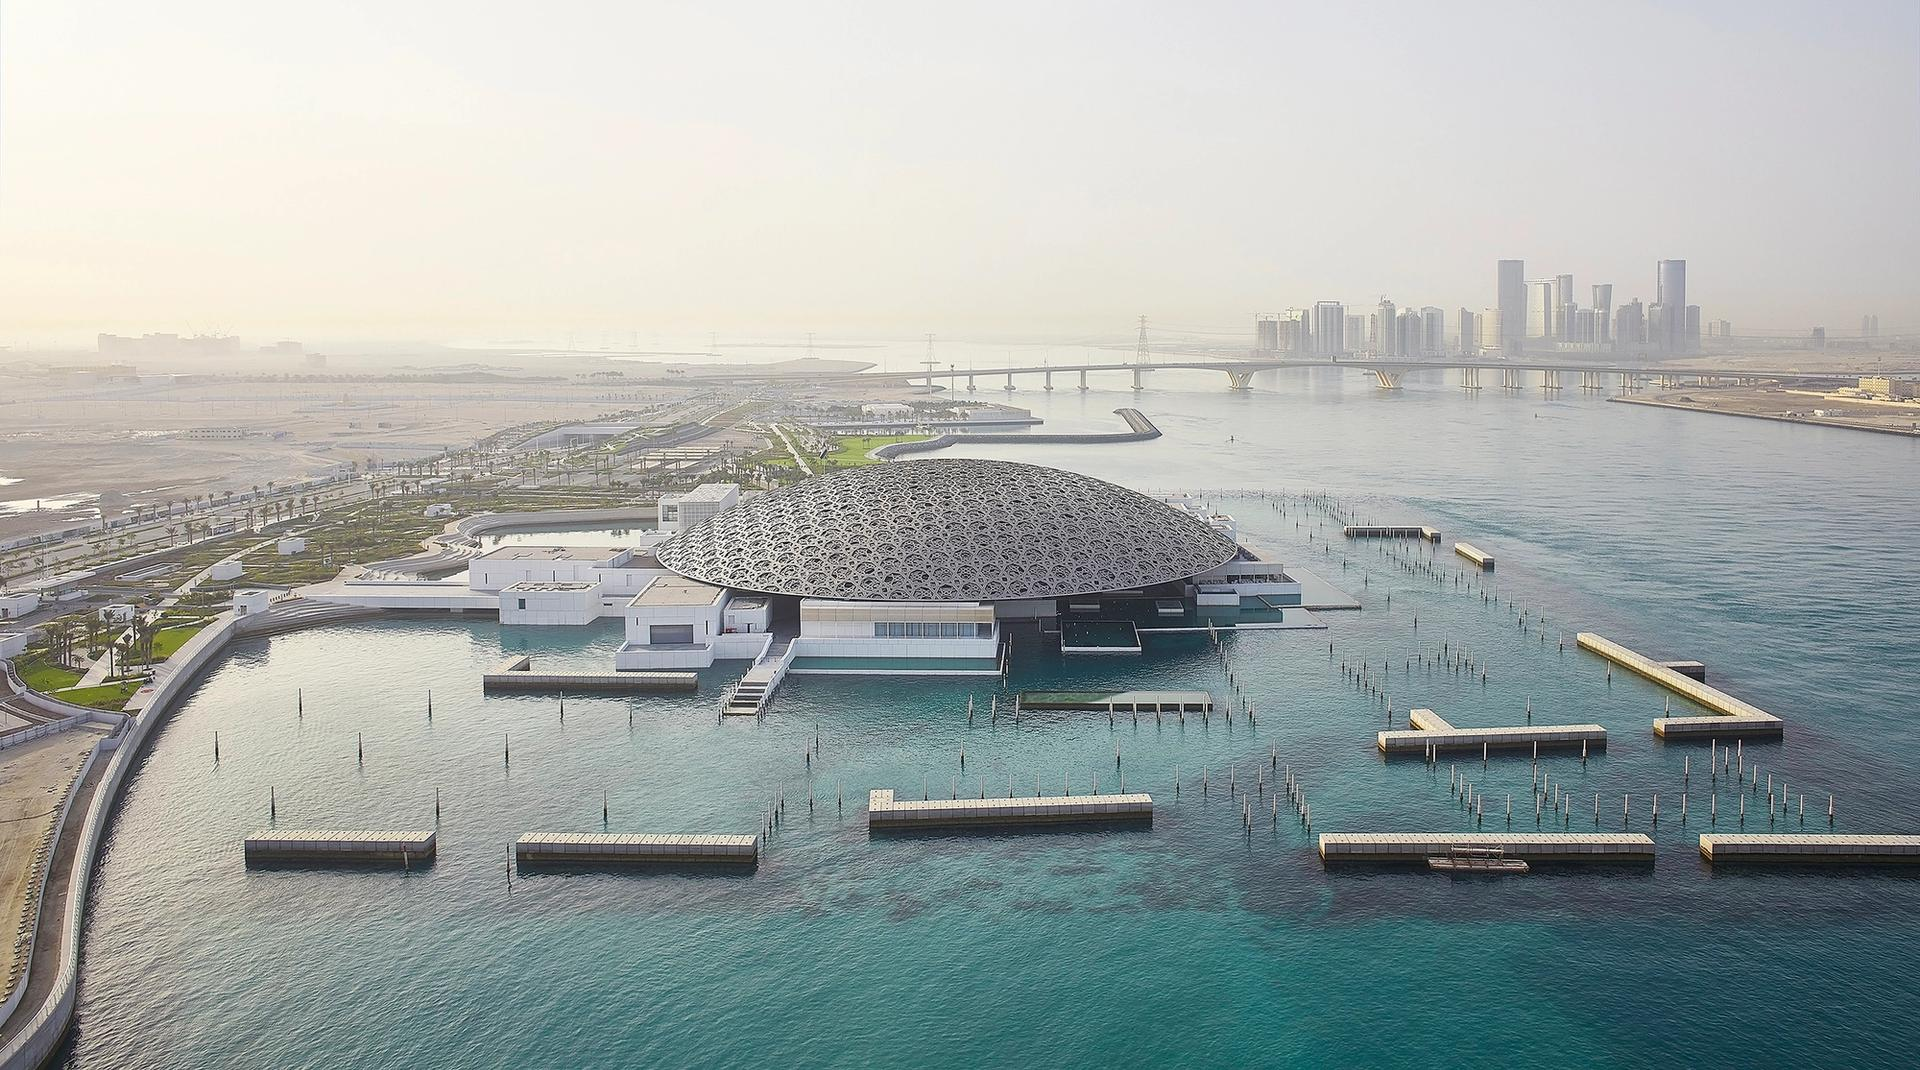 The Jean Nouvel-designed Louvre Abu Dhabi Courtesy of Louvre Abu Dhabi